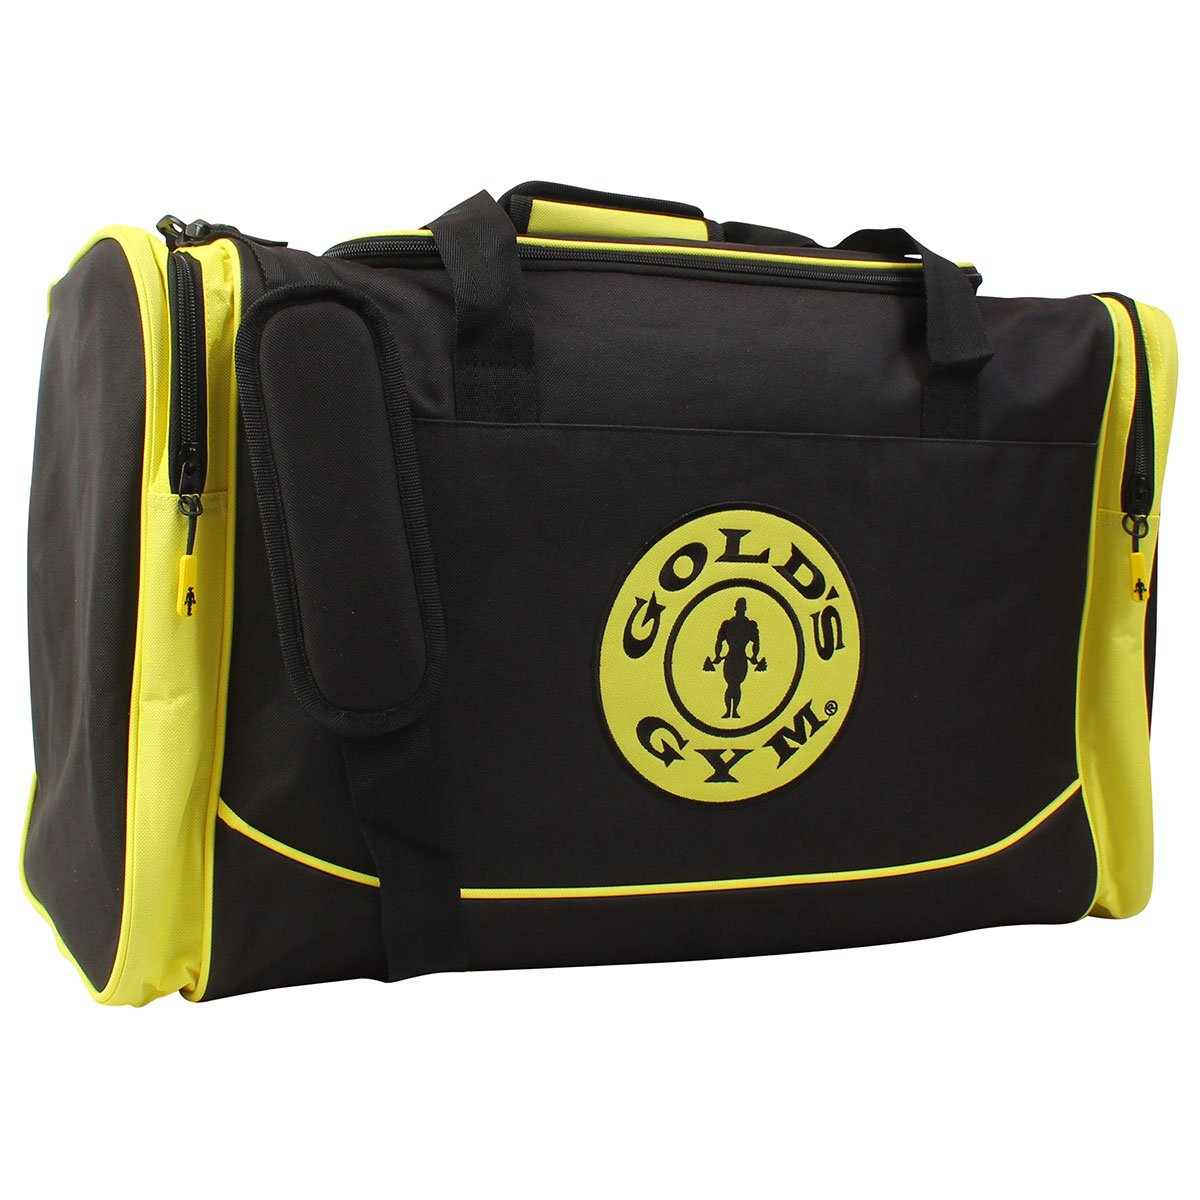 Gold's Gym 2017 Grand Sports Duffel Bag Hommes Sac de Sport / Voyage Holdall Gold' s Gym